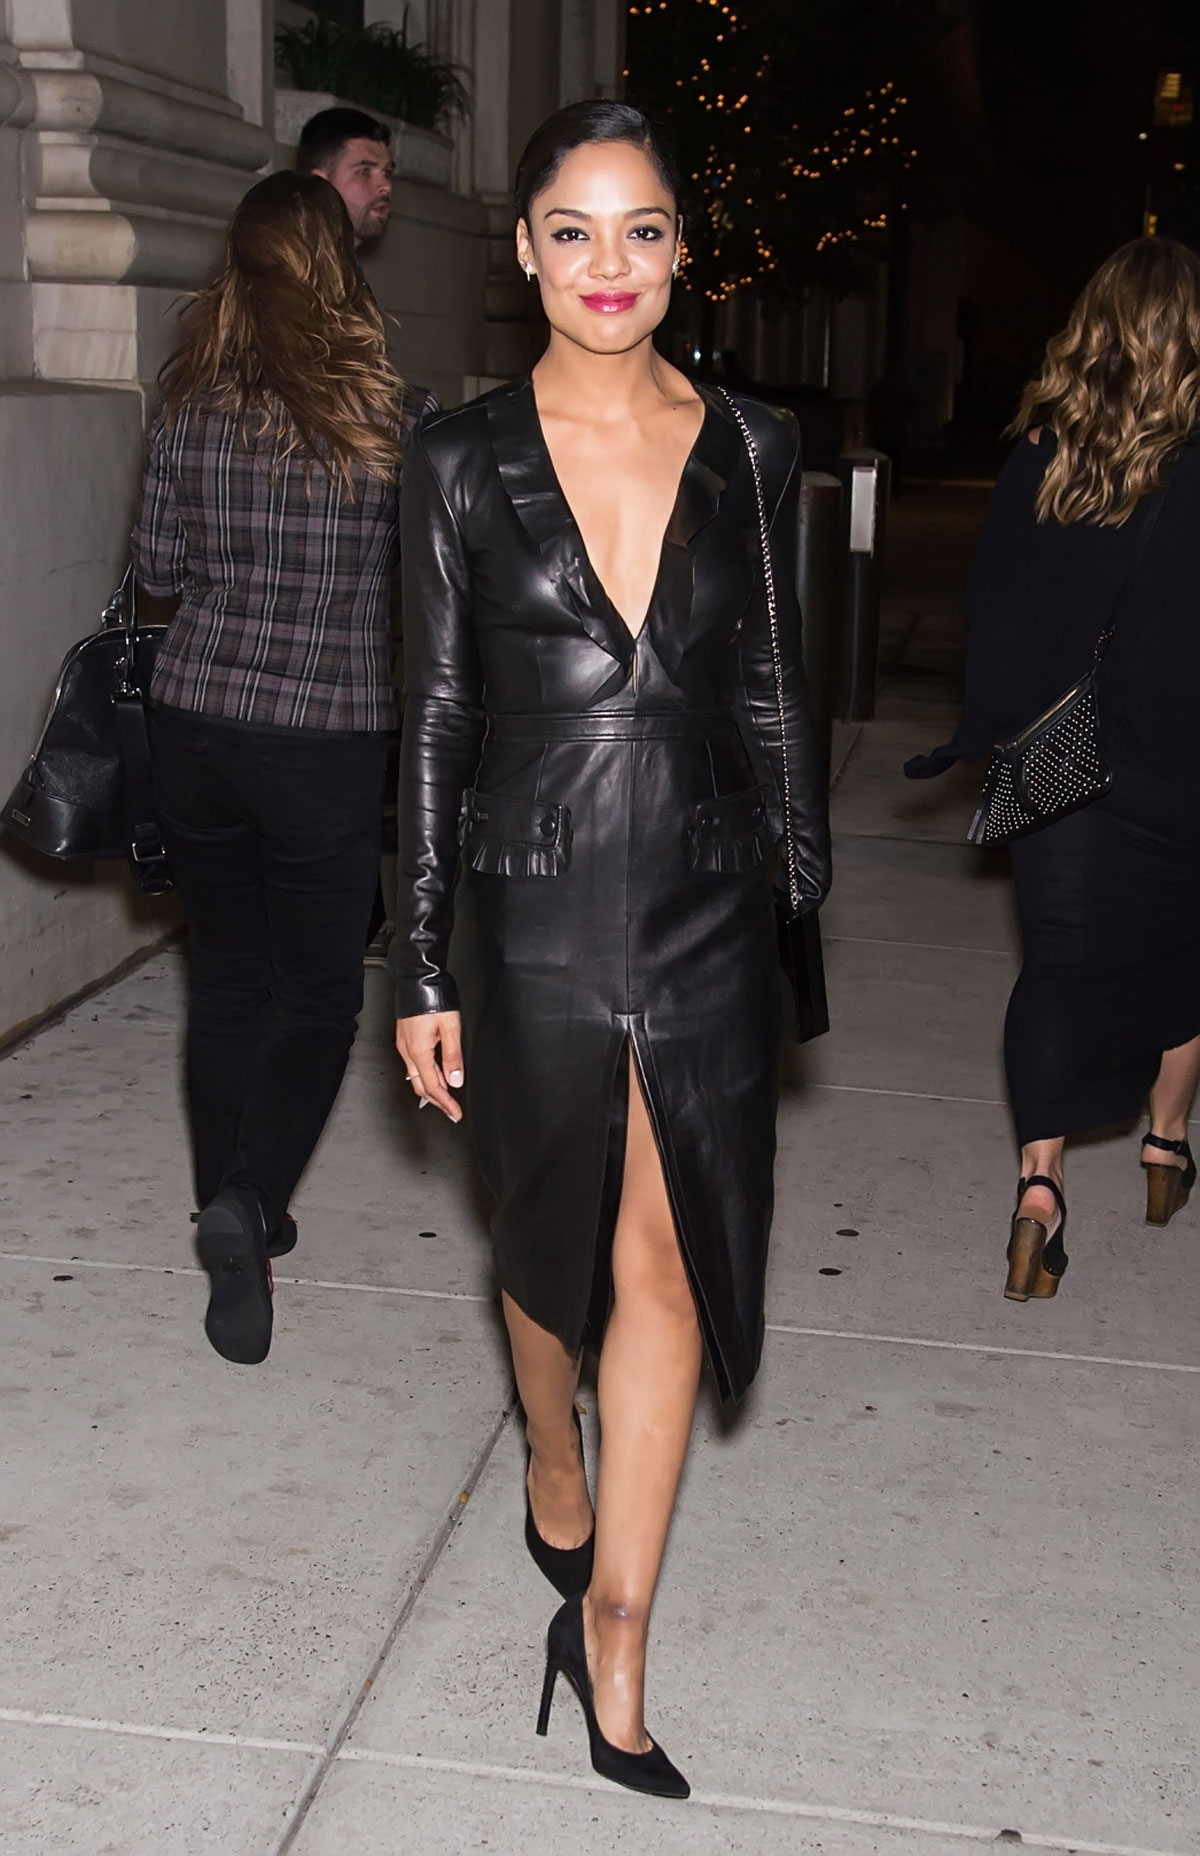 Tessa Thompson seen leaving a private screening of her new movie Creed